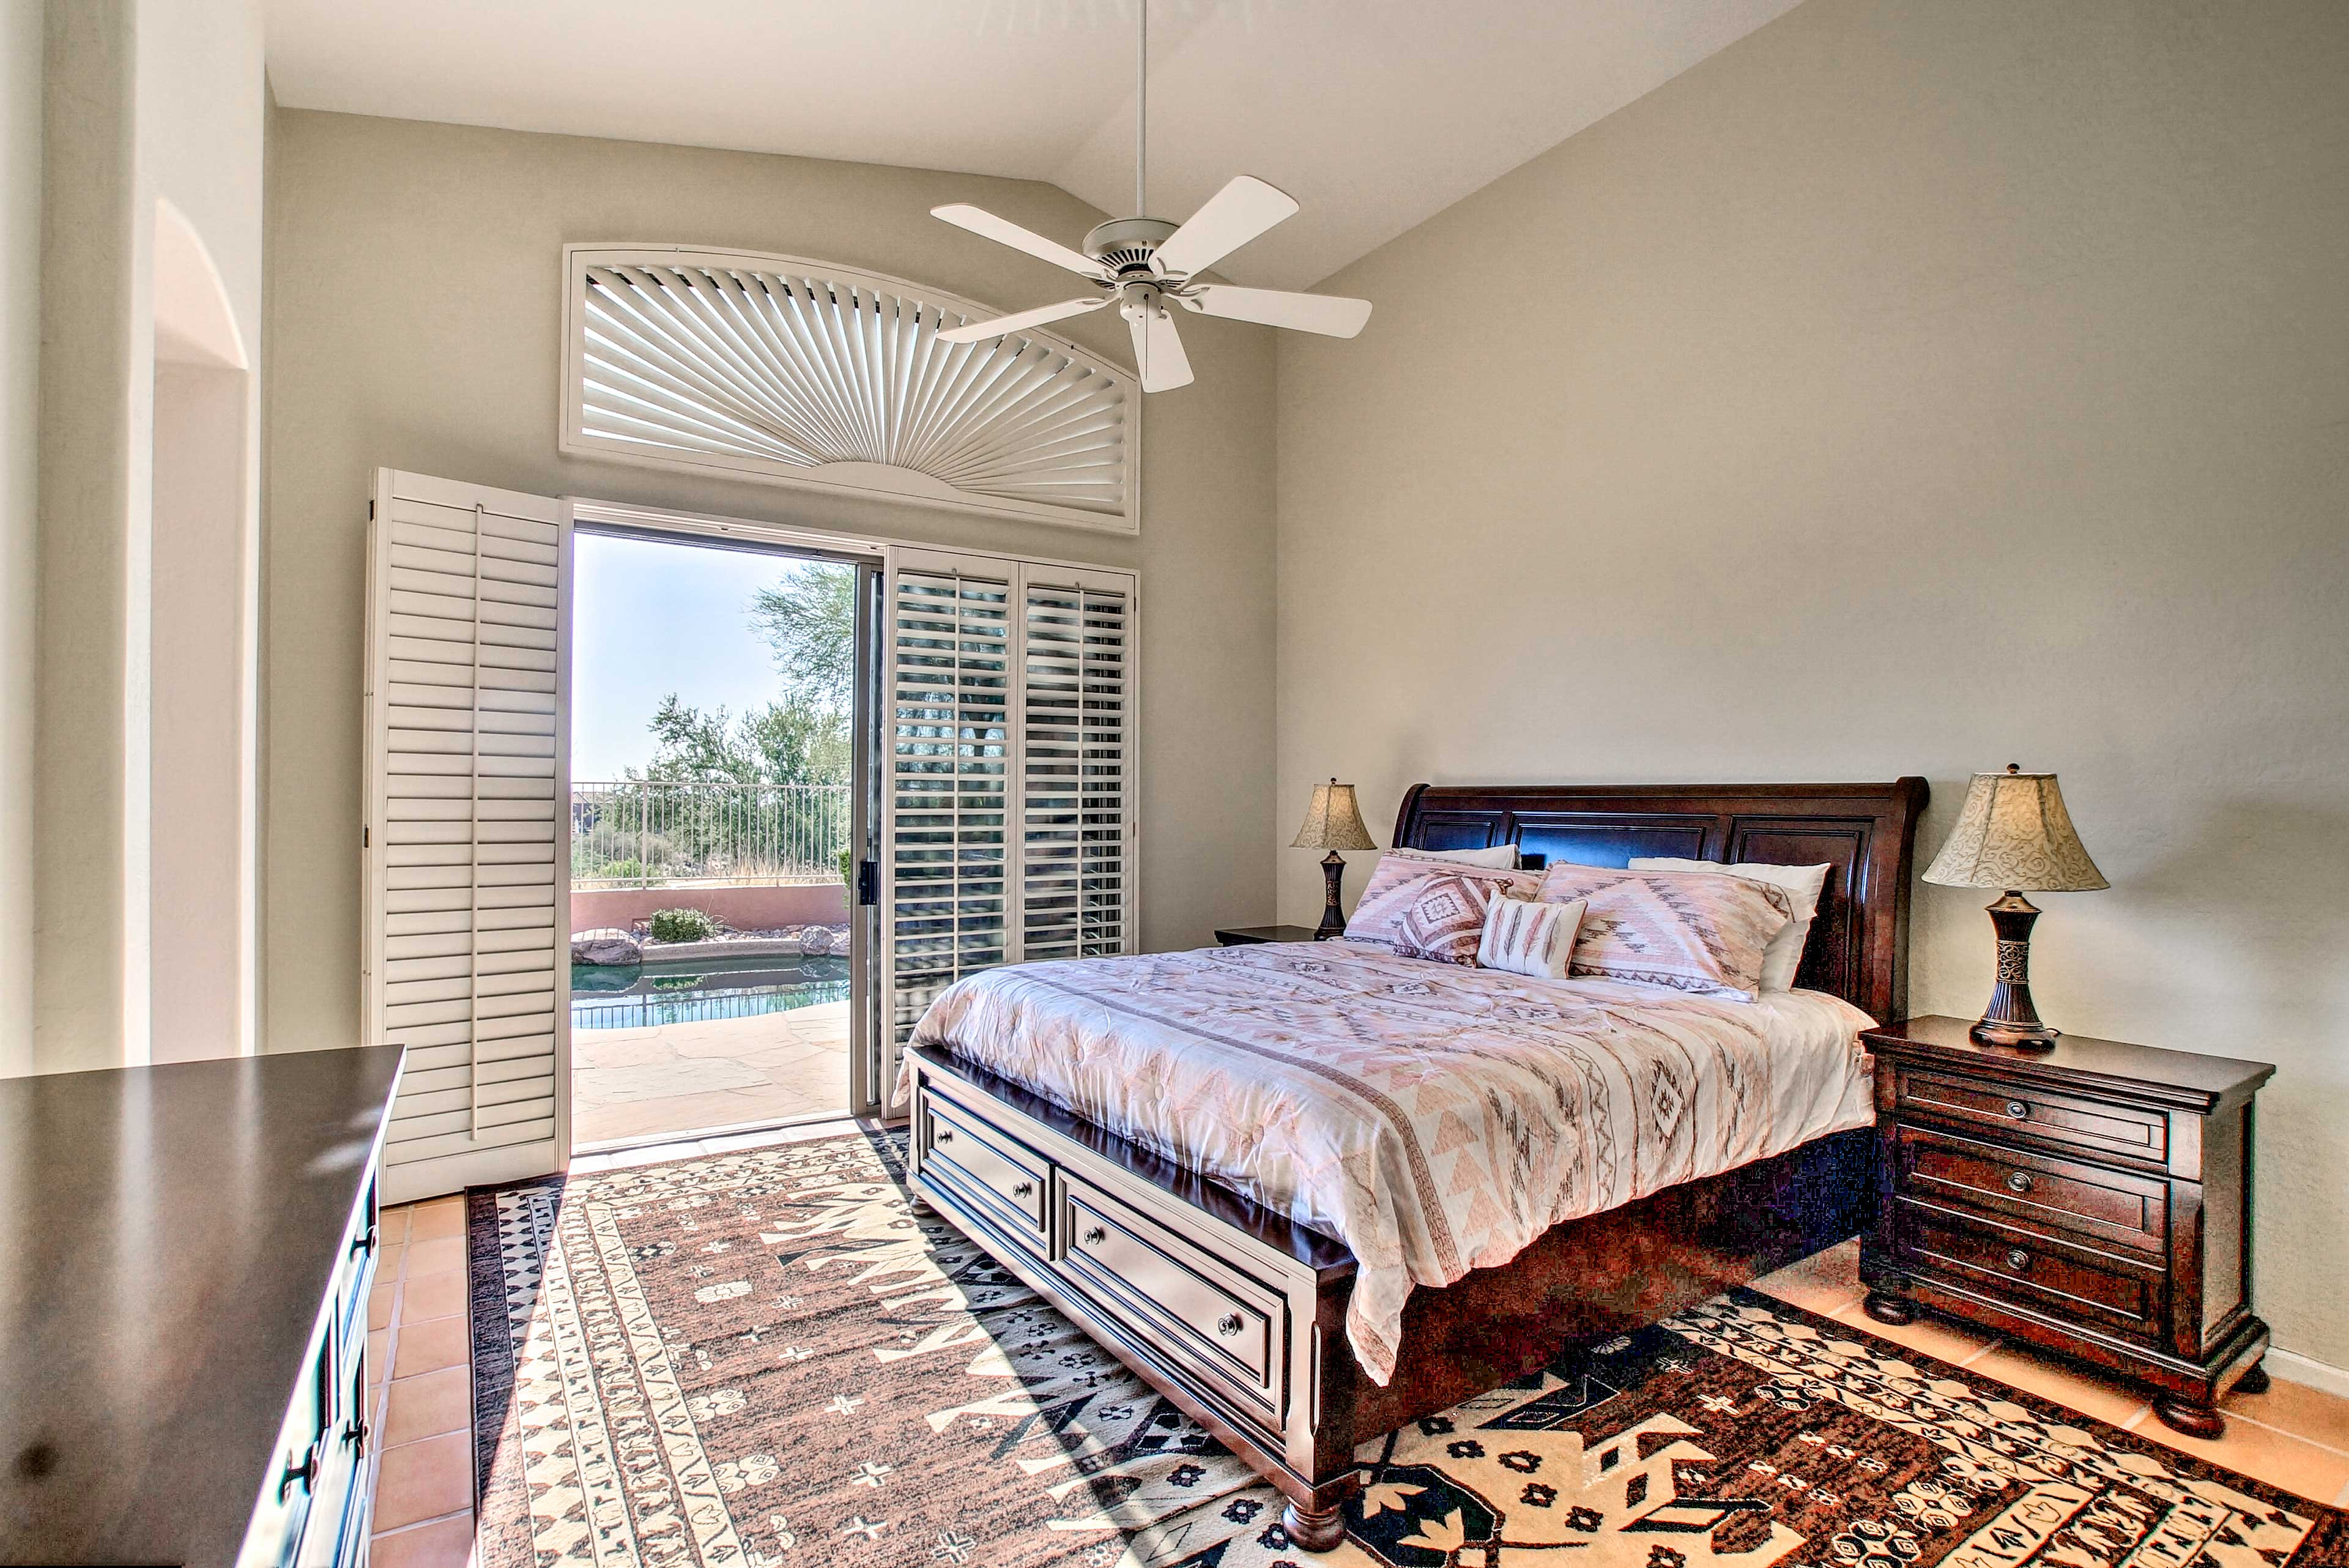 The luxurious master bedroom features a private entrance to the patio and pool.